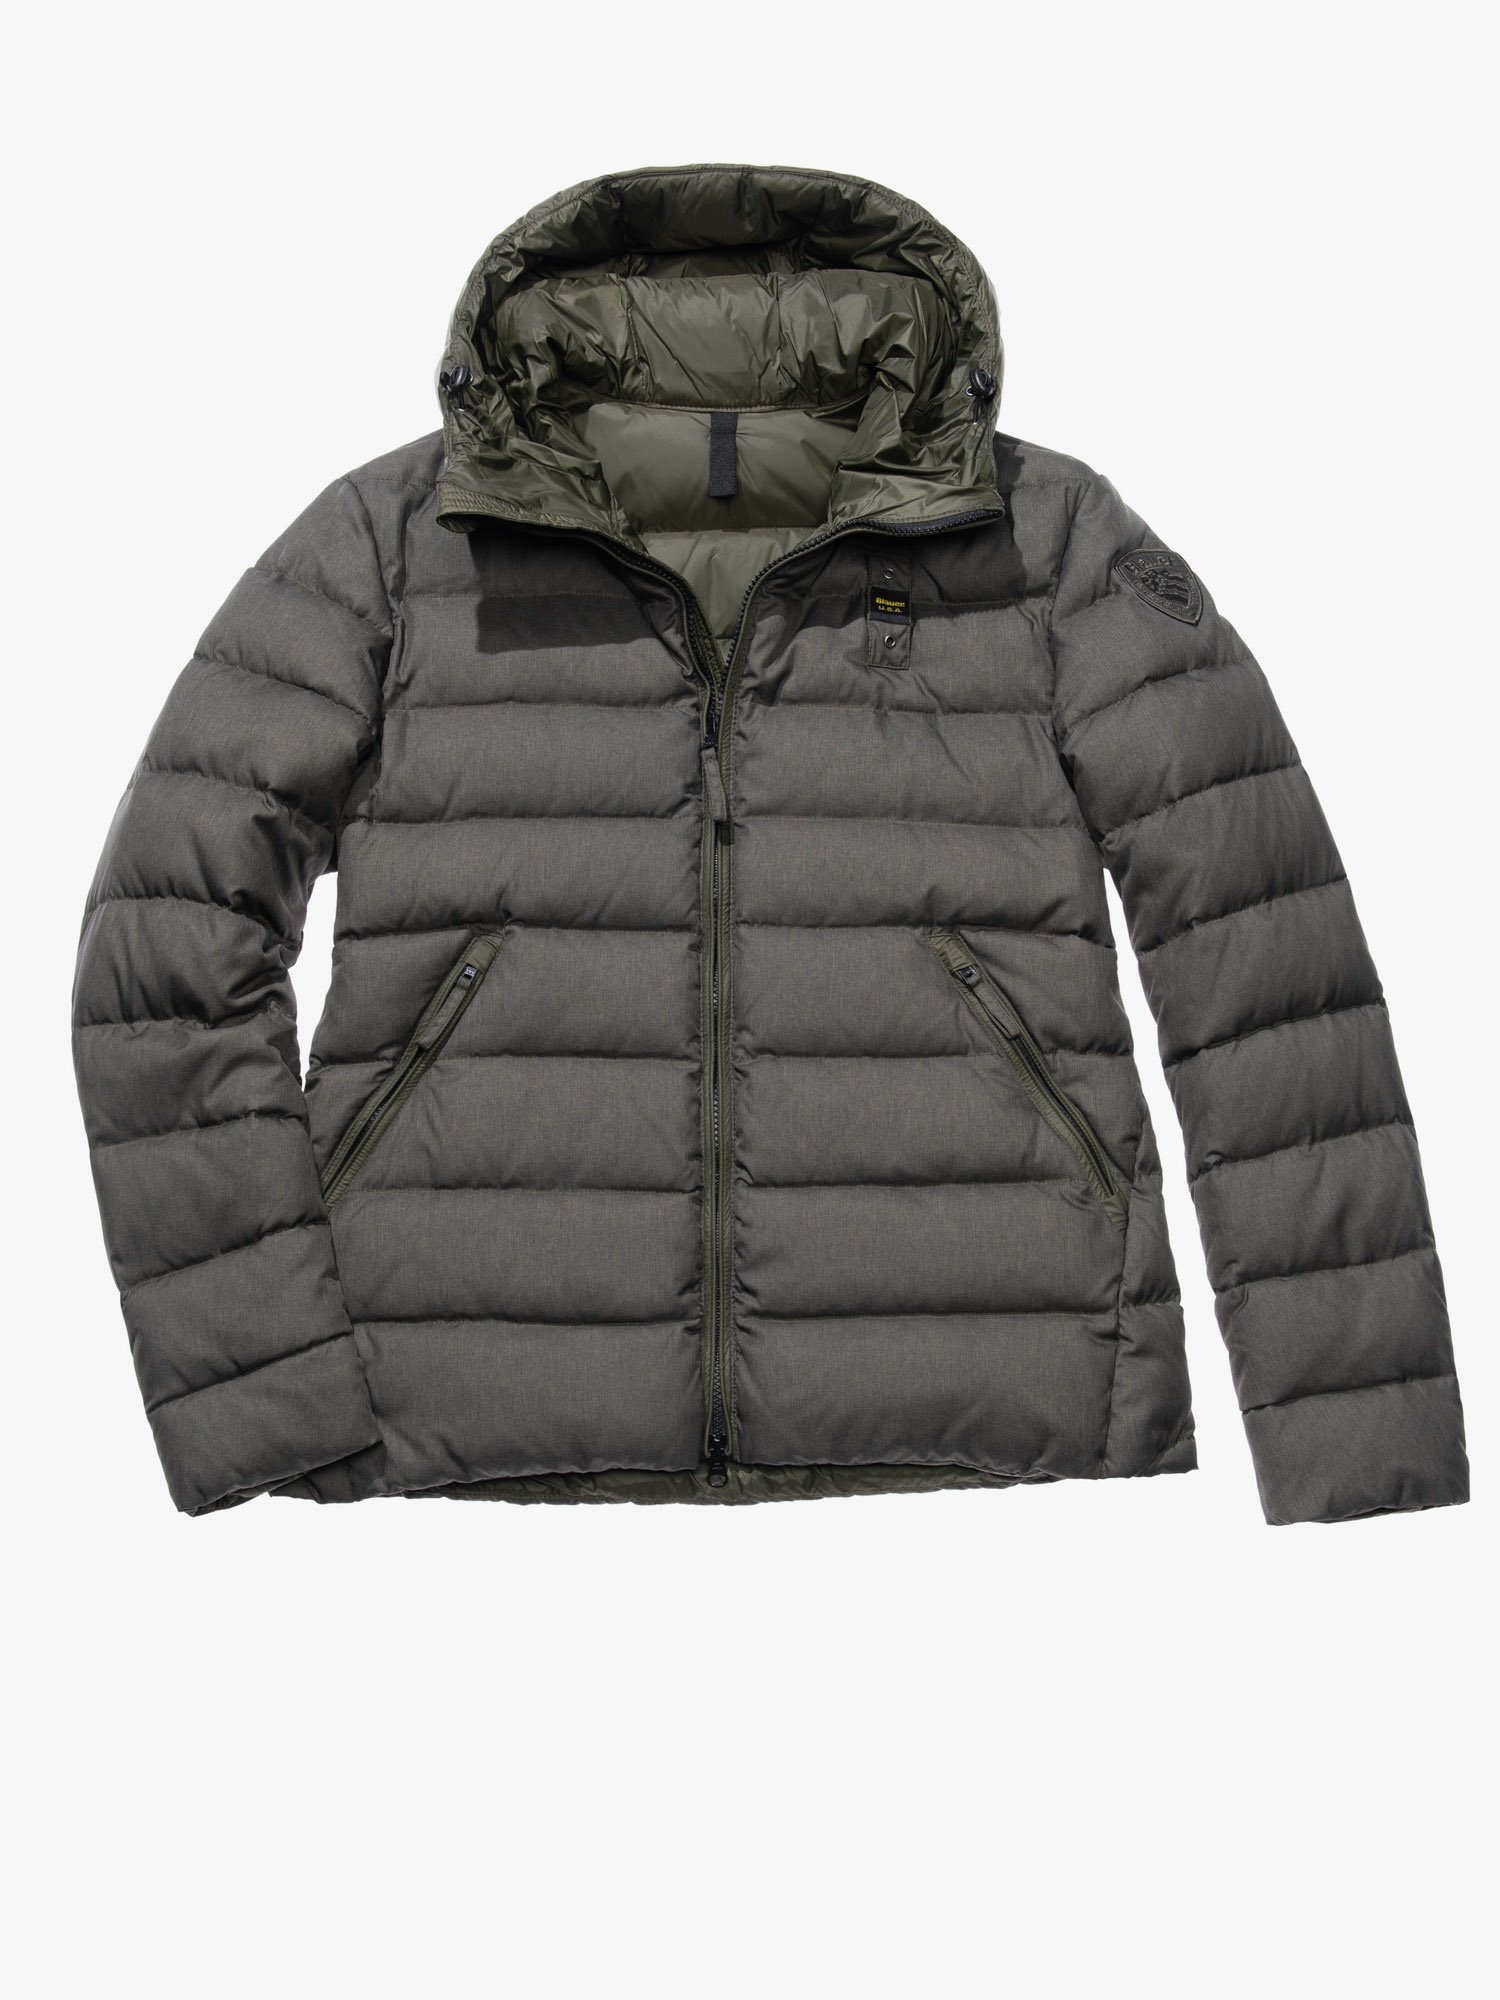 Blauer - EMANUELE NYLON AND GABARDINE DOWN JACKET - Asphalt grey - Blauer